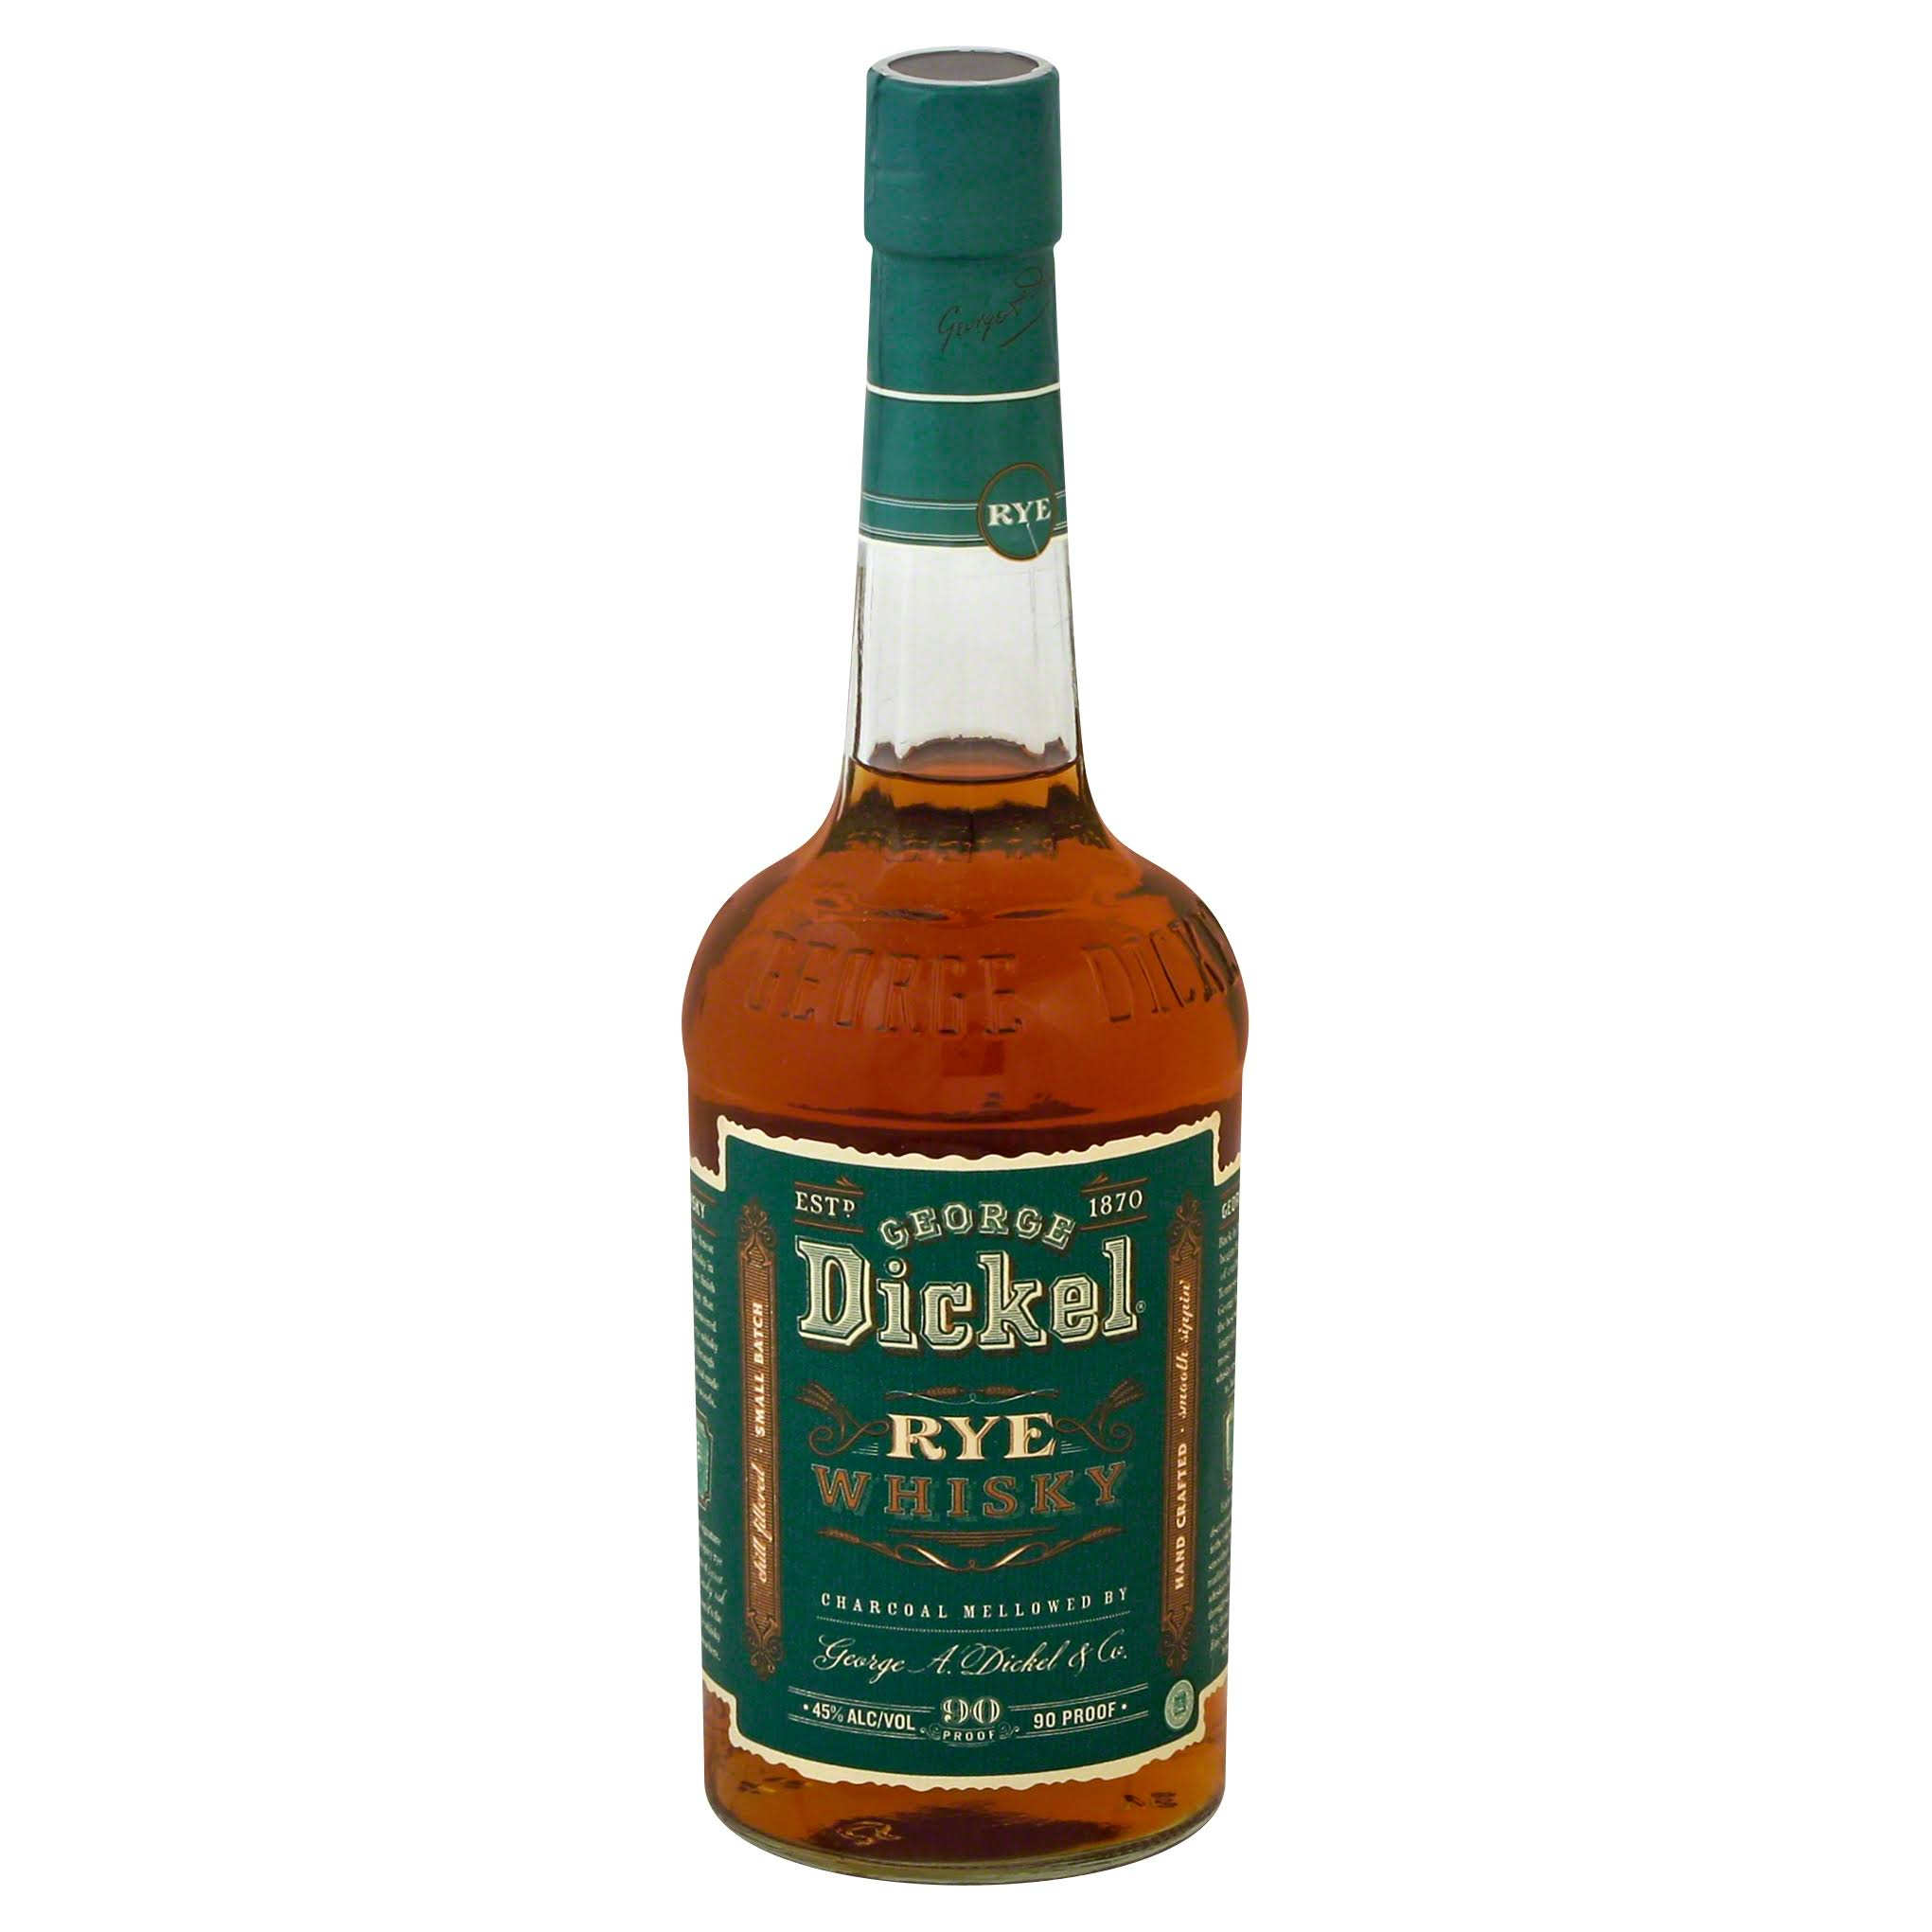 George Dickel Rye Whiskey - 750 ml bottle